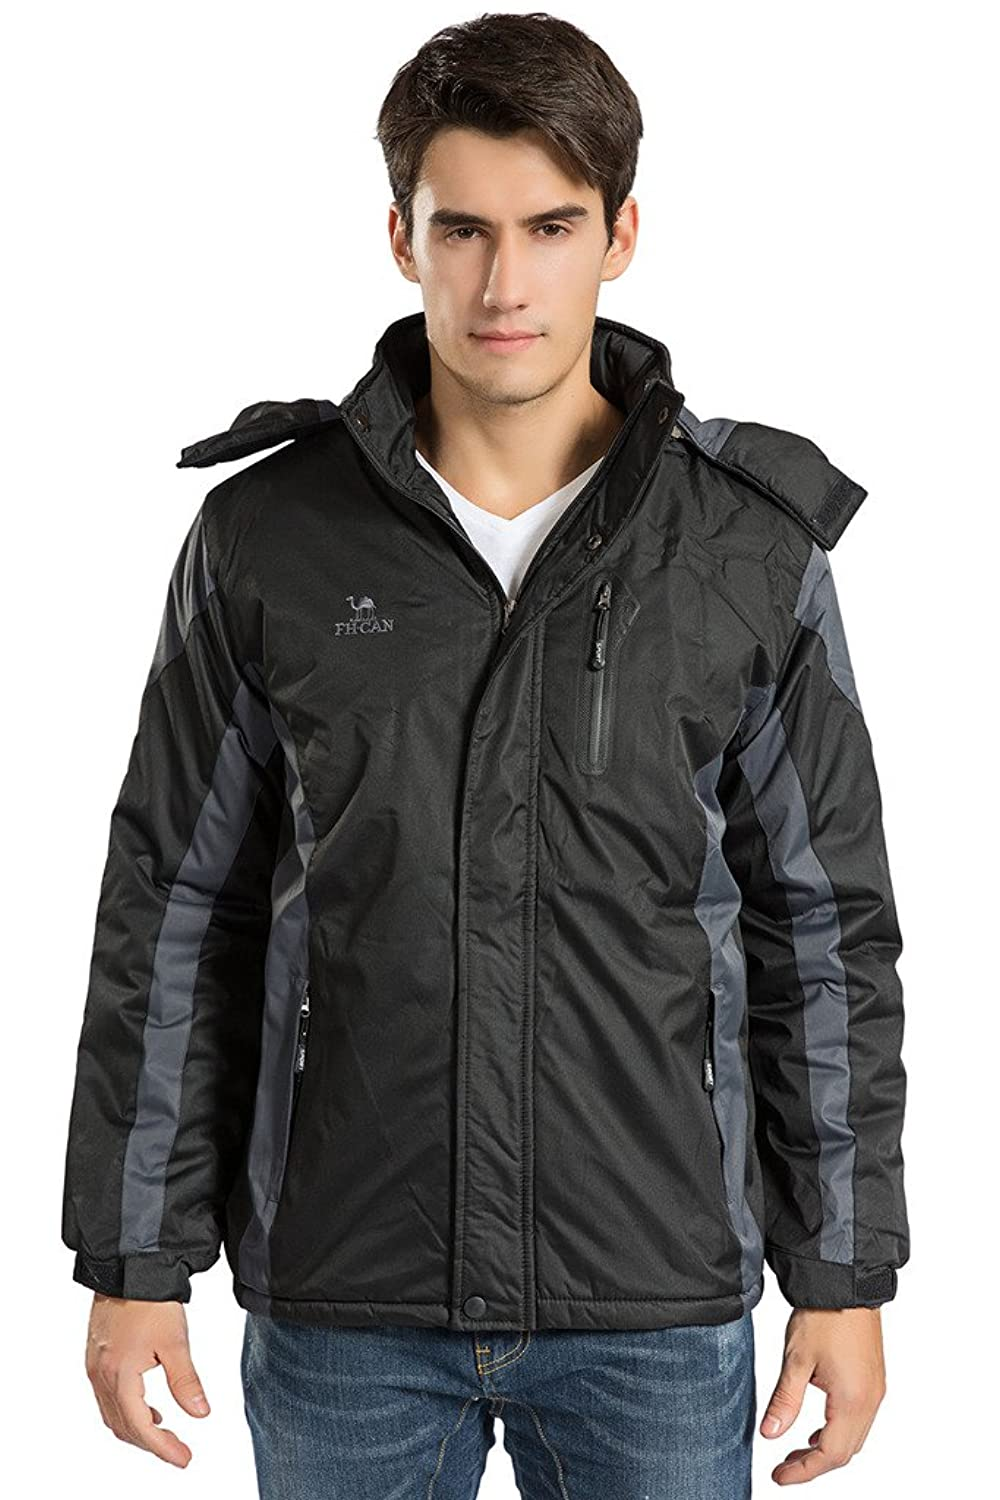 Men's Winter Warm Fleece Lined Ski Coats